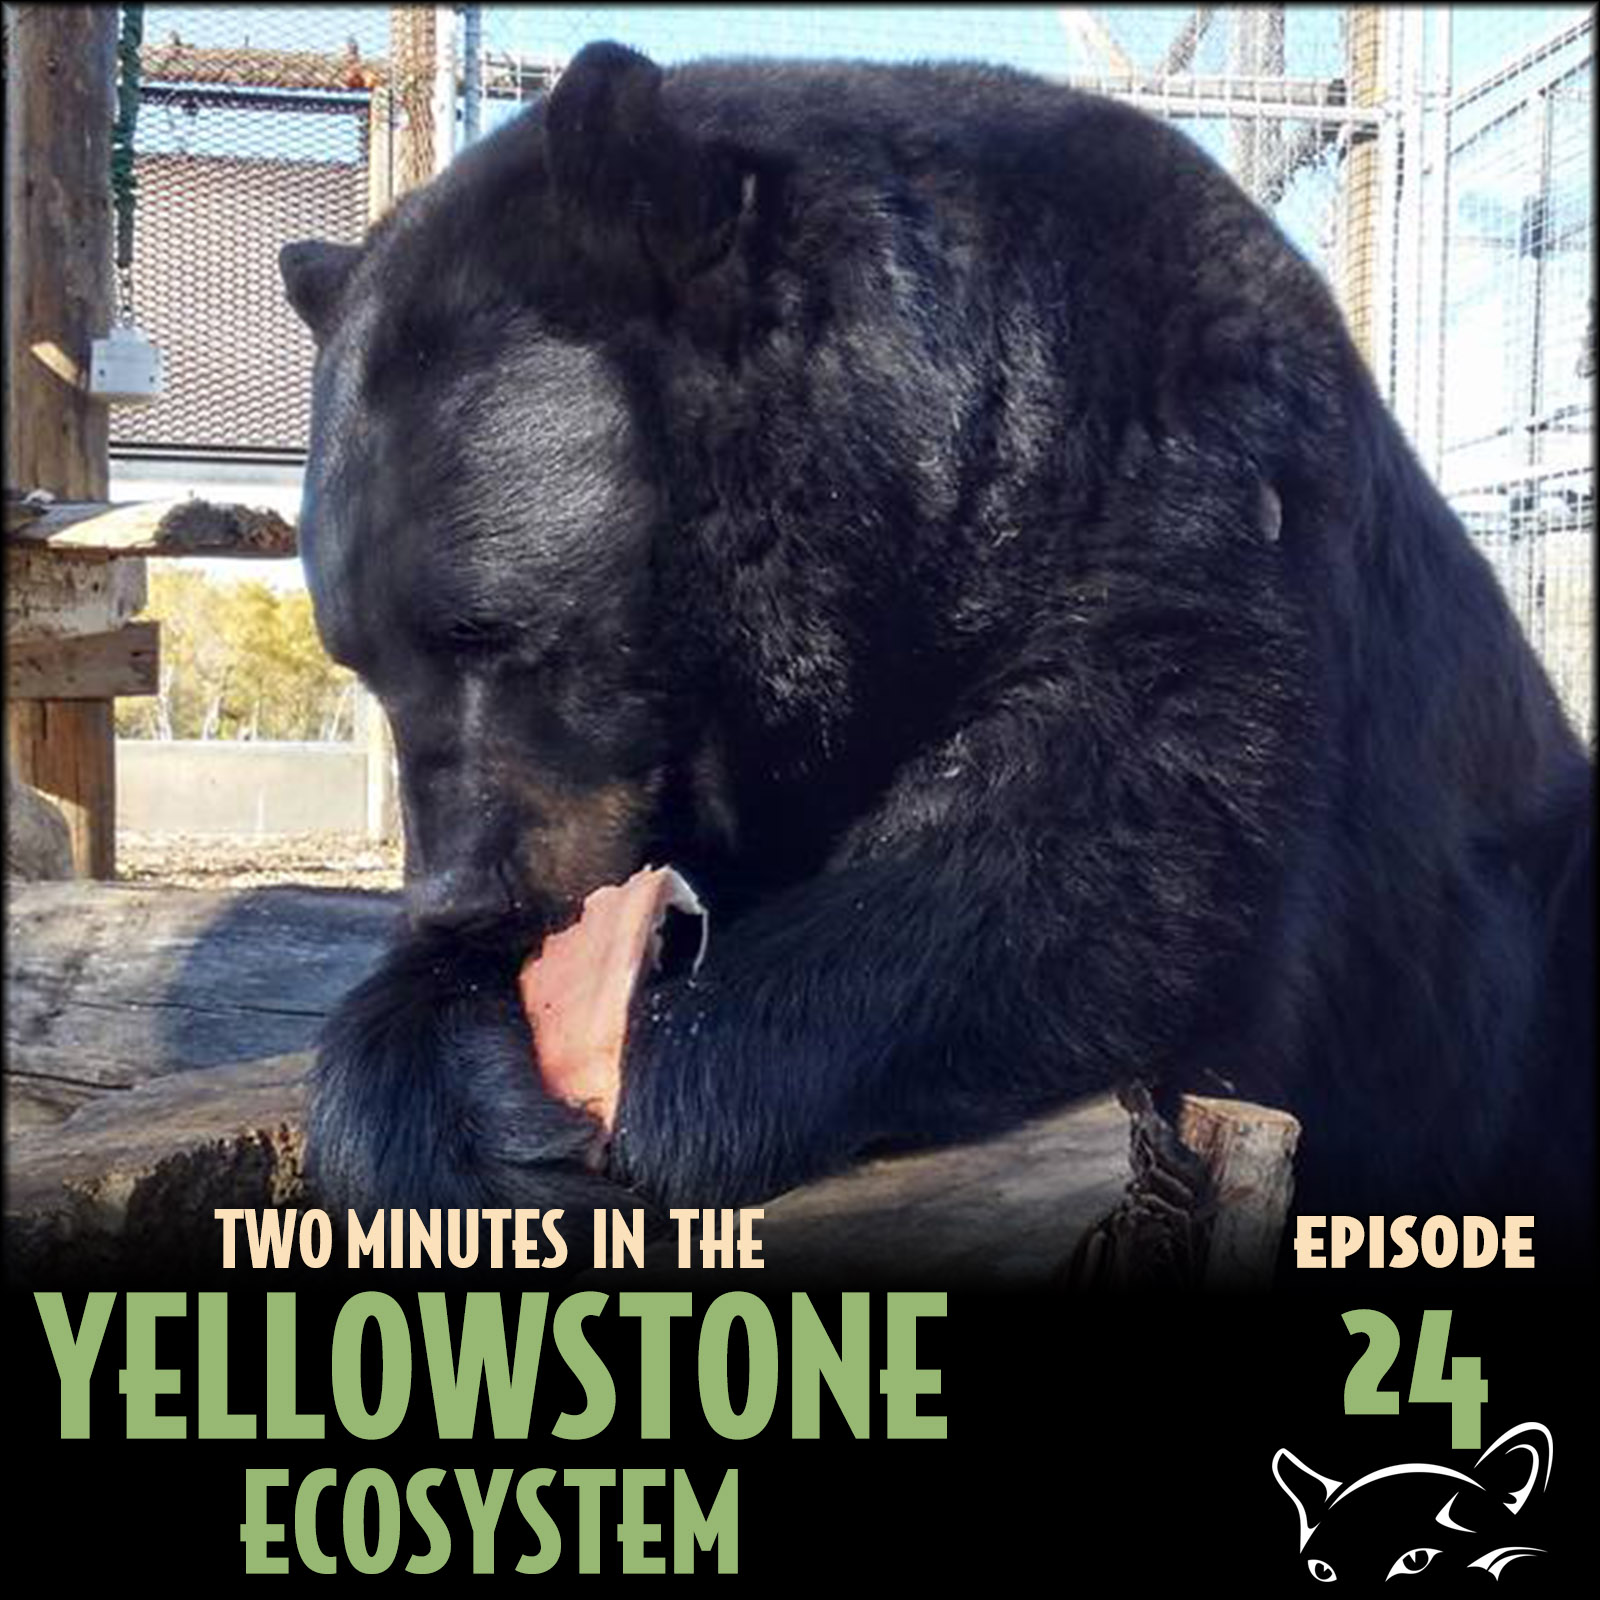 Episode 24: Hyperphagic Bears